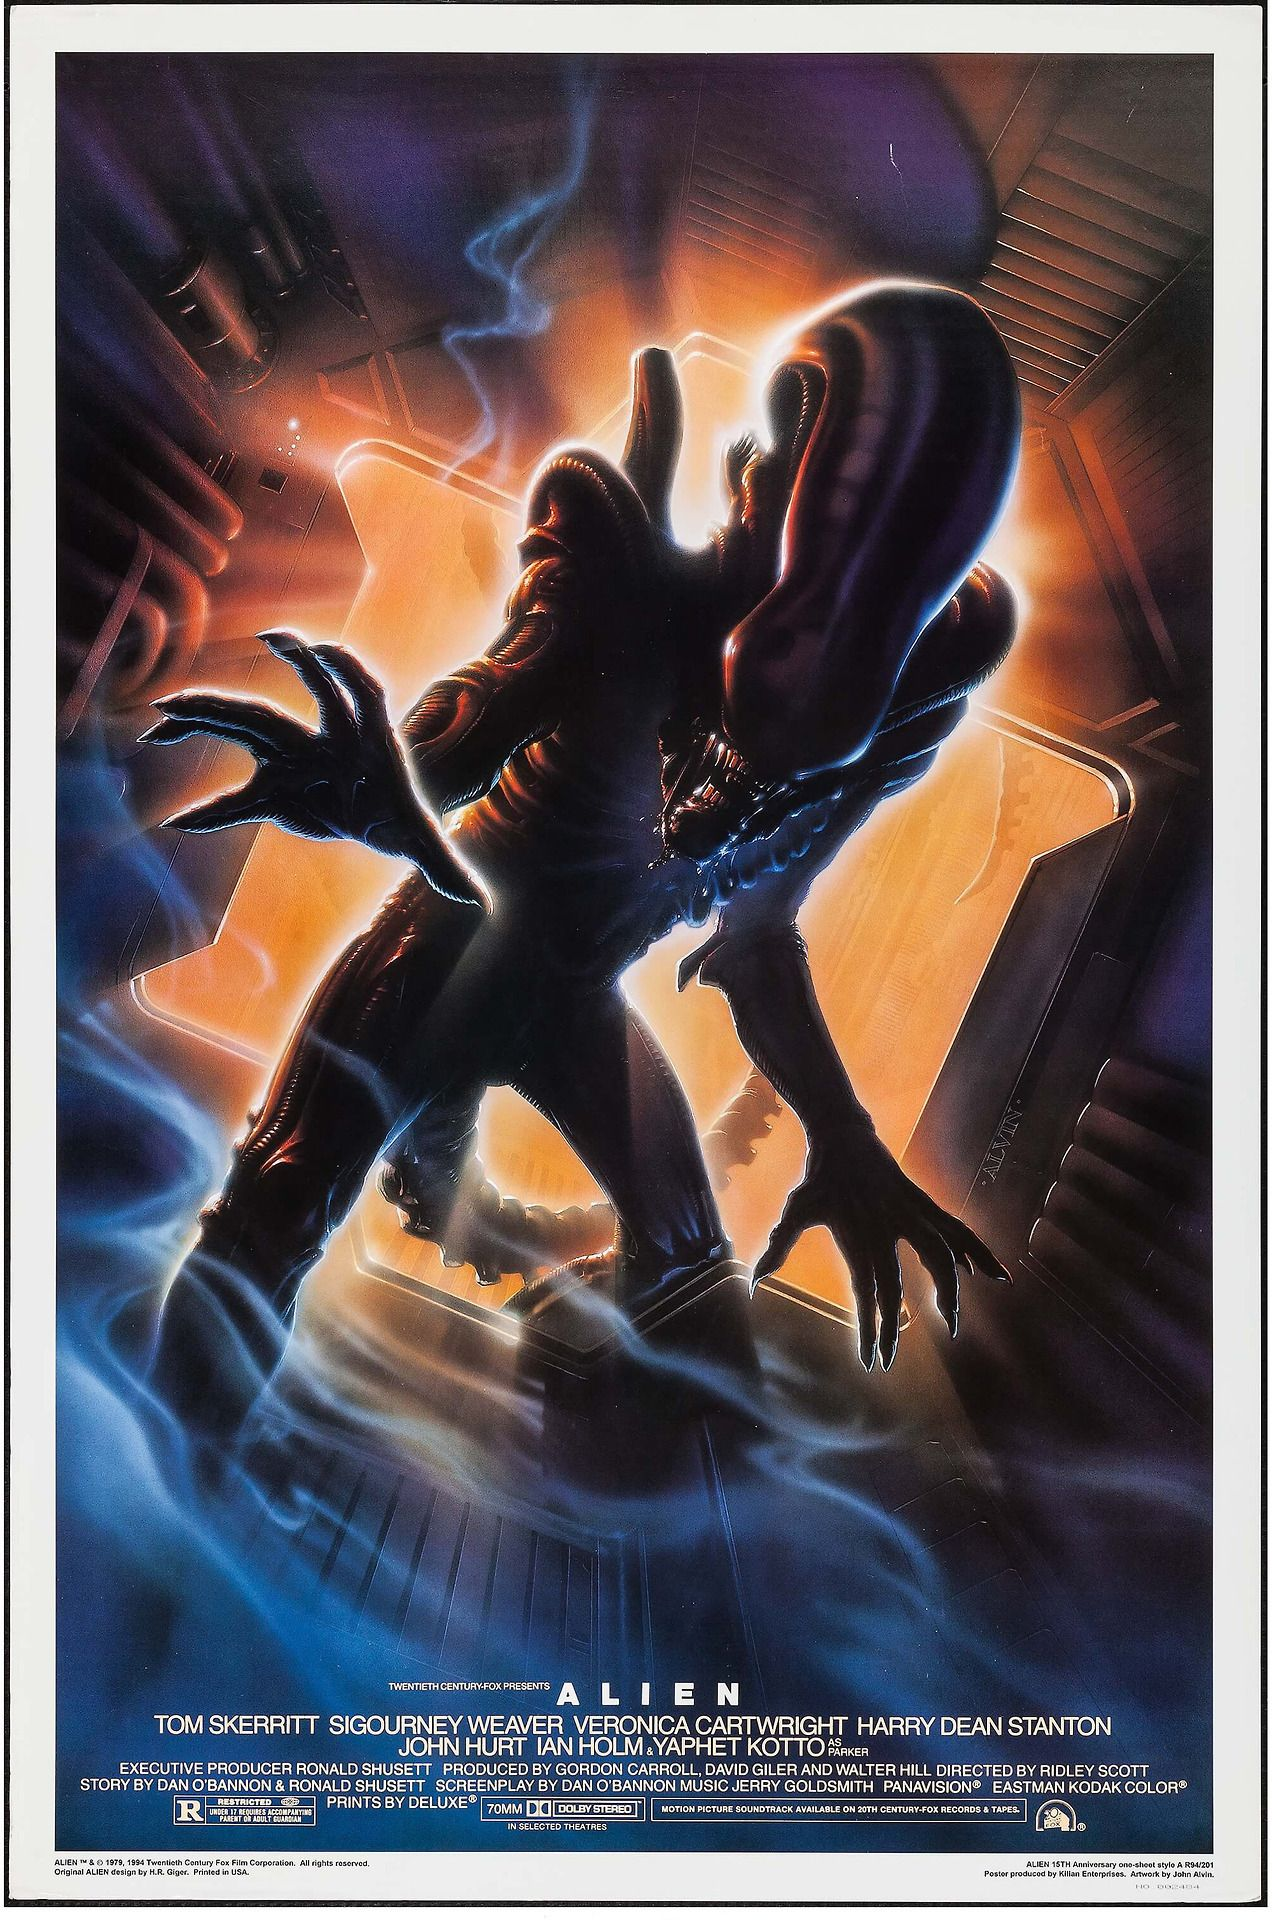 15th anniversary poster for the 1979 film alien art by